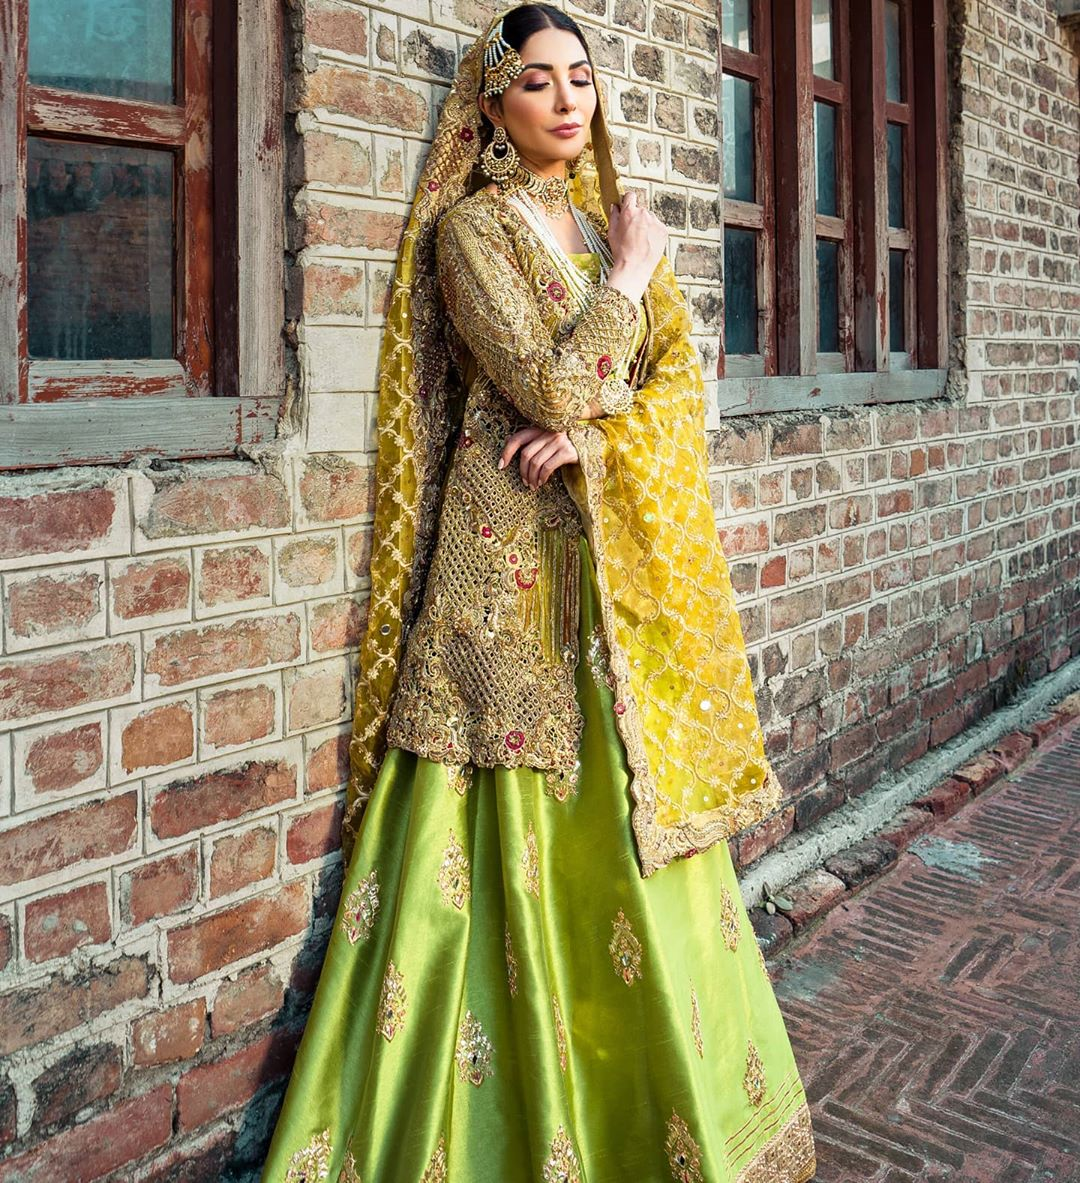 Sabeeka Imam Looks Undeniably Gorgeous In Bridal Dresses By Mahreen Gul 4